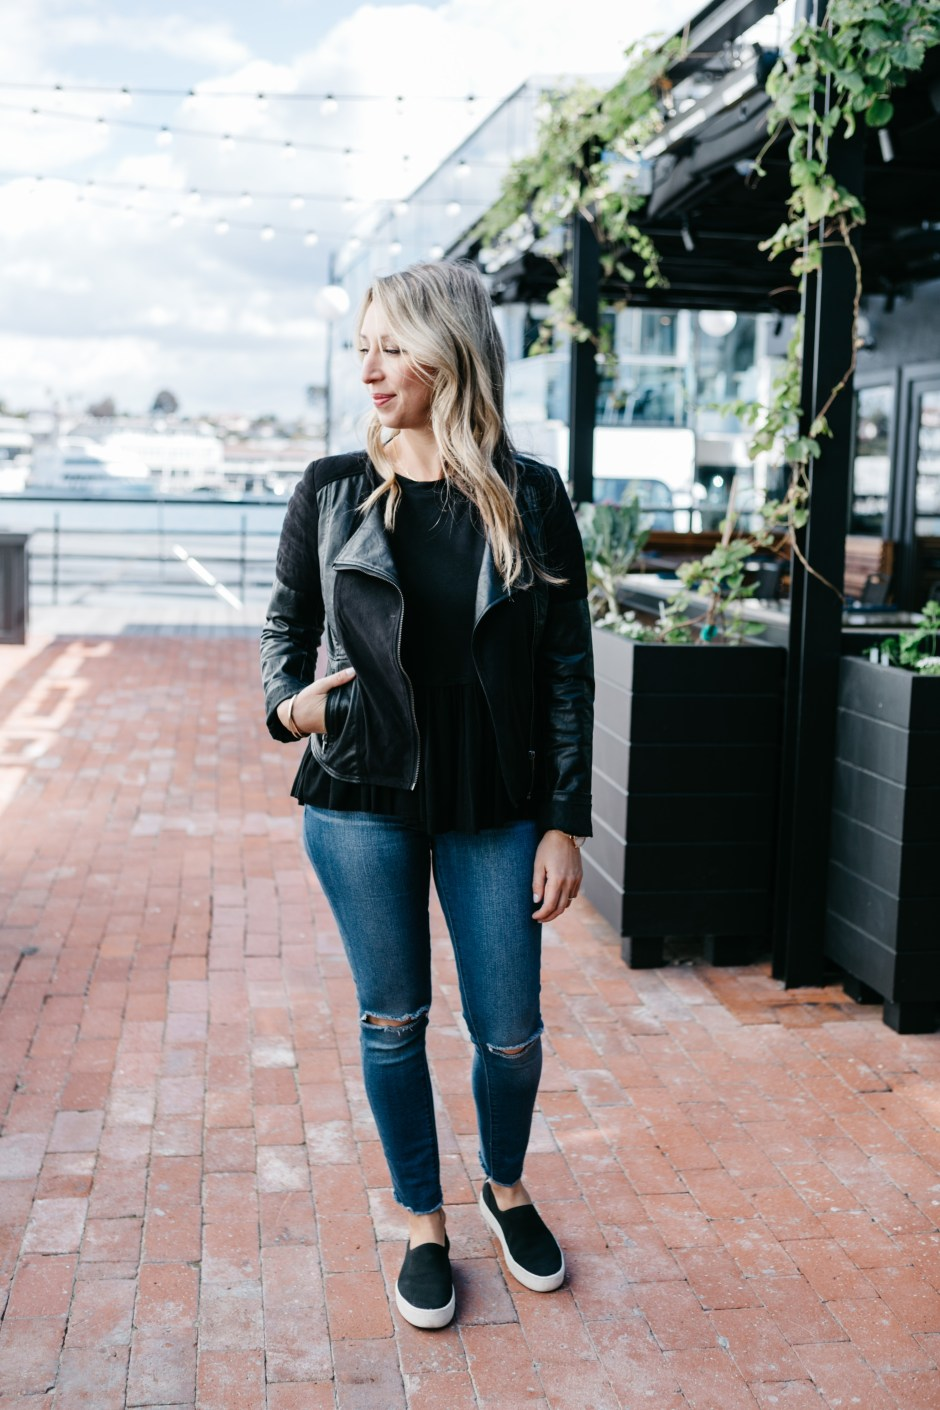 casual basics for everyday style